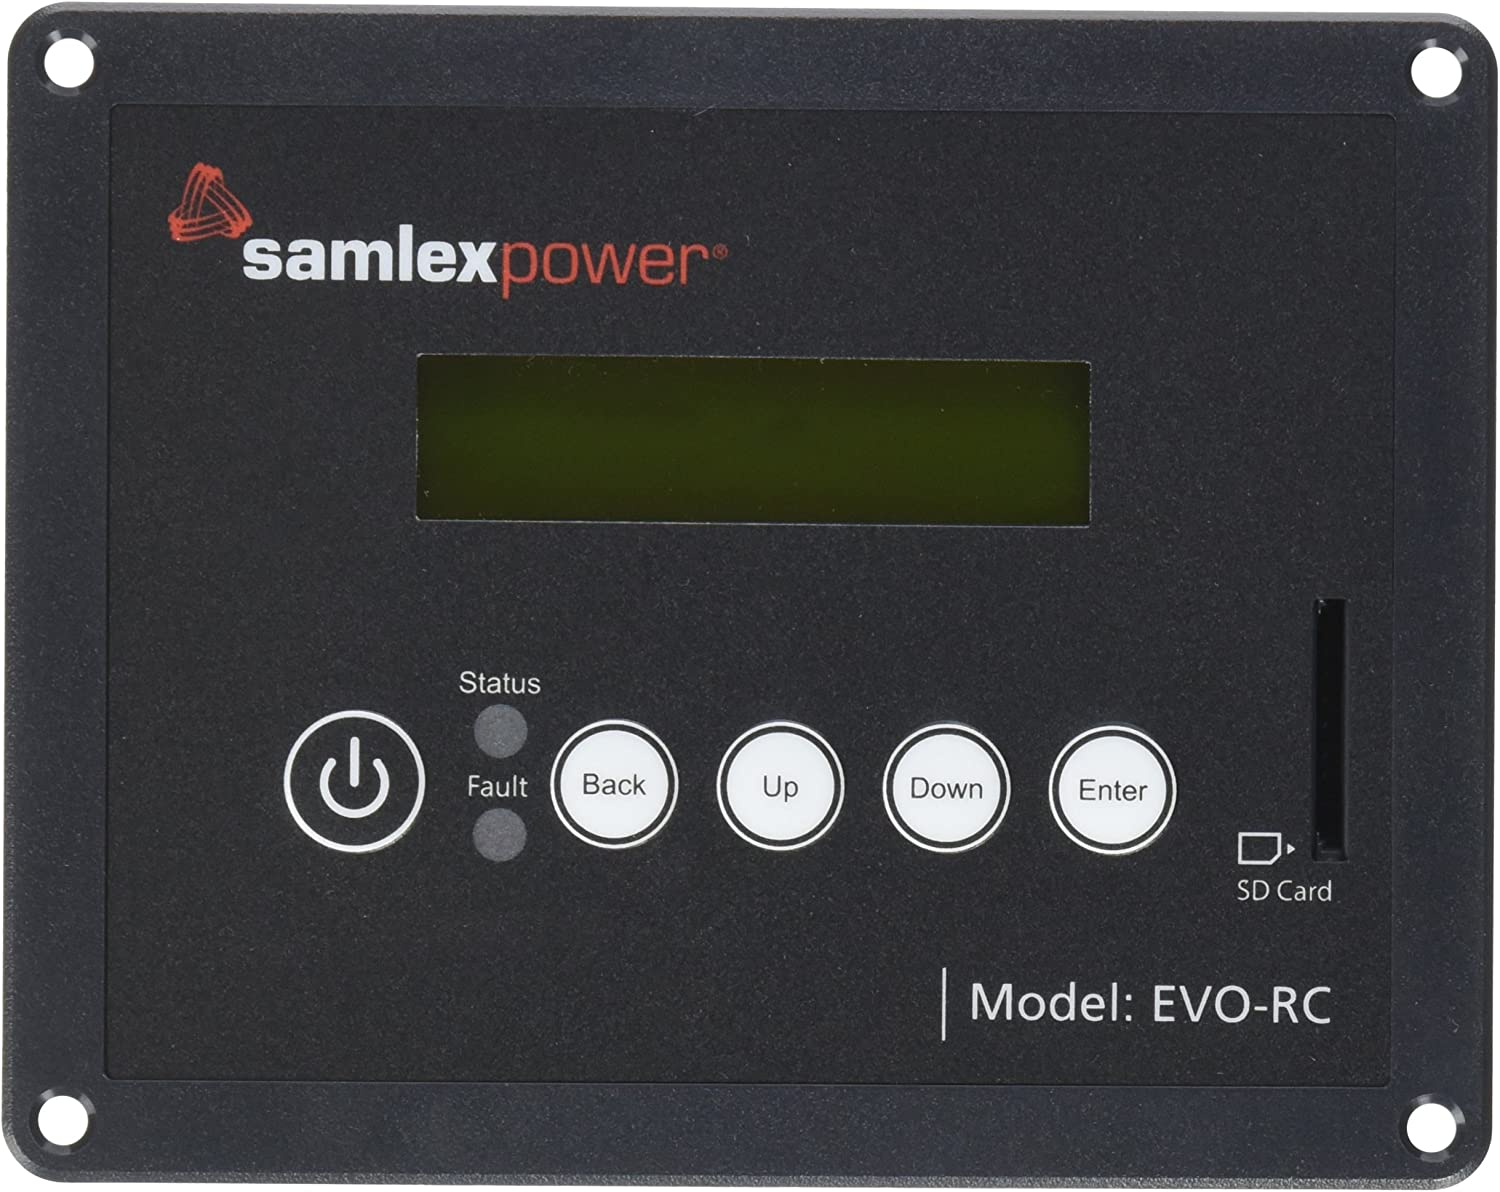 Samlex Solar EVO-RC Remote Control for Evolution Series Inverter Charger